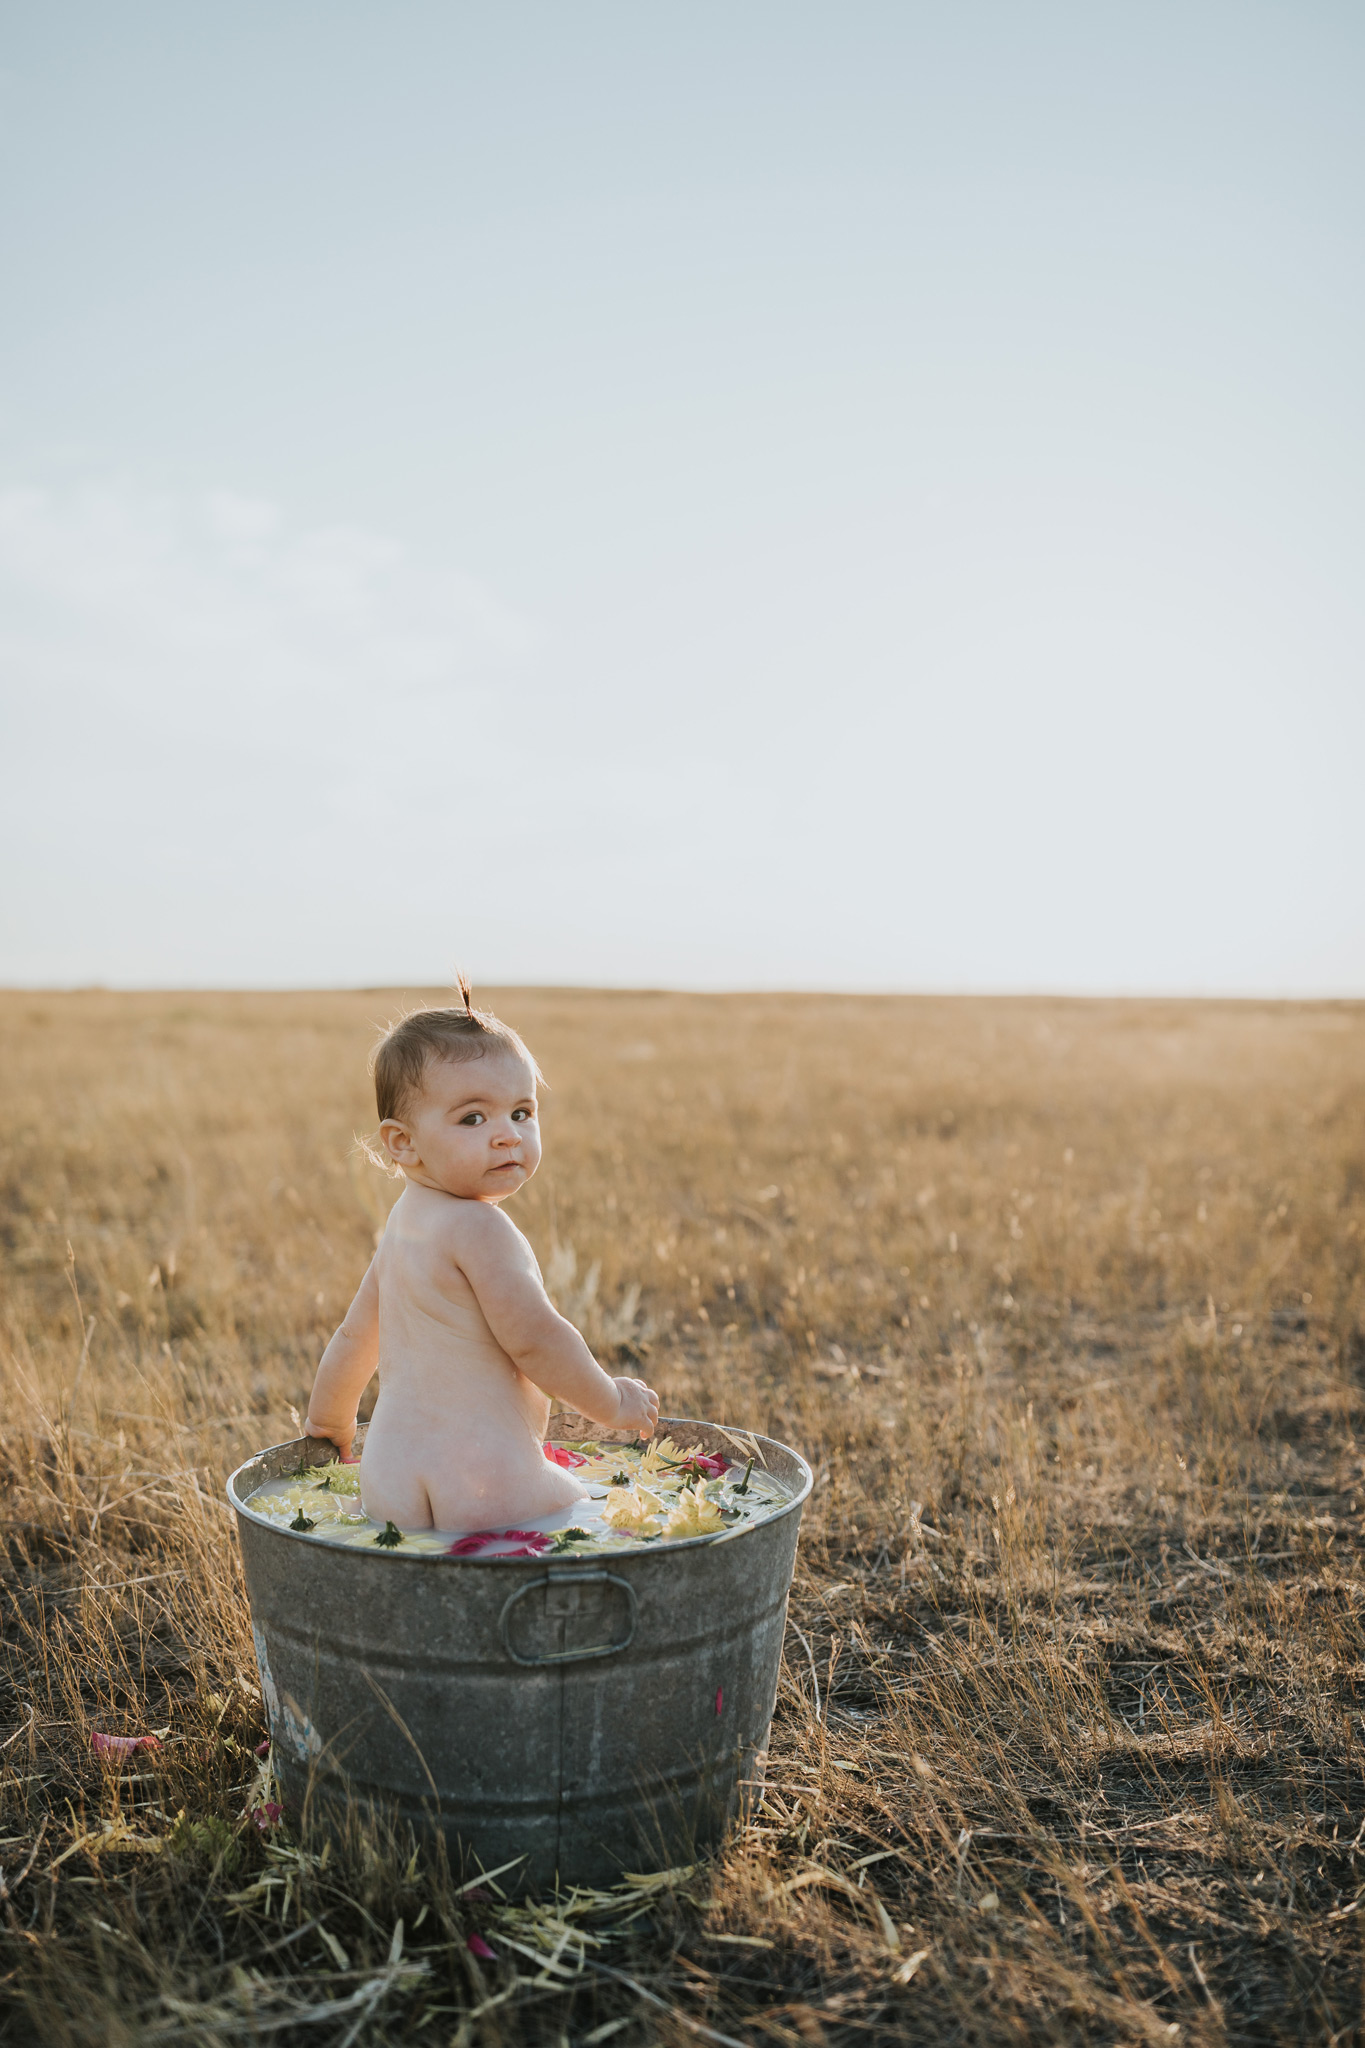 baby standing in flower milk bath alberta